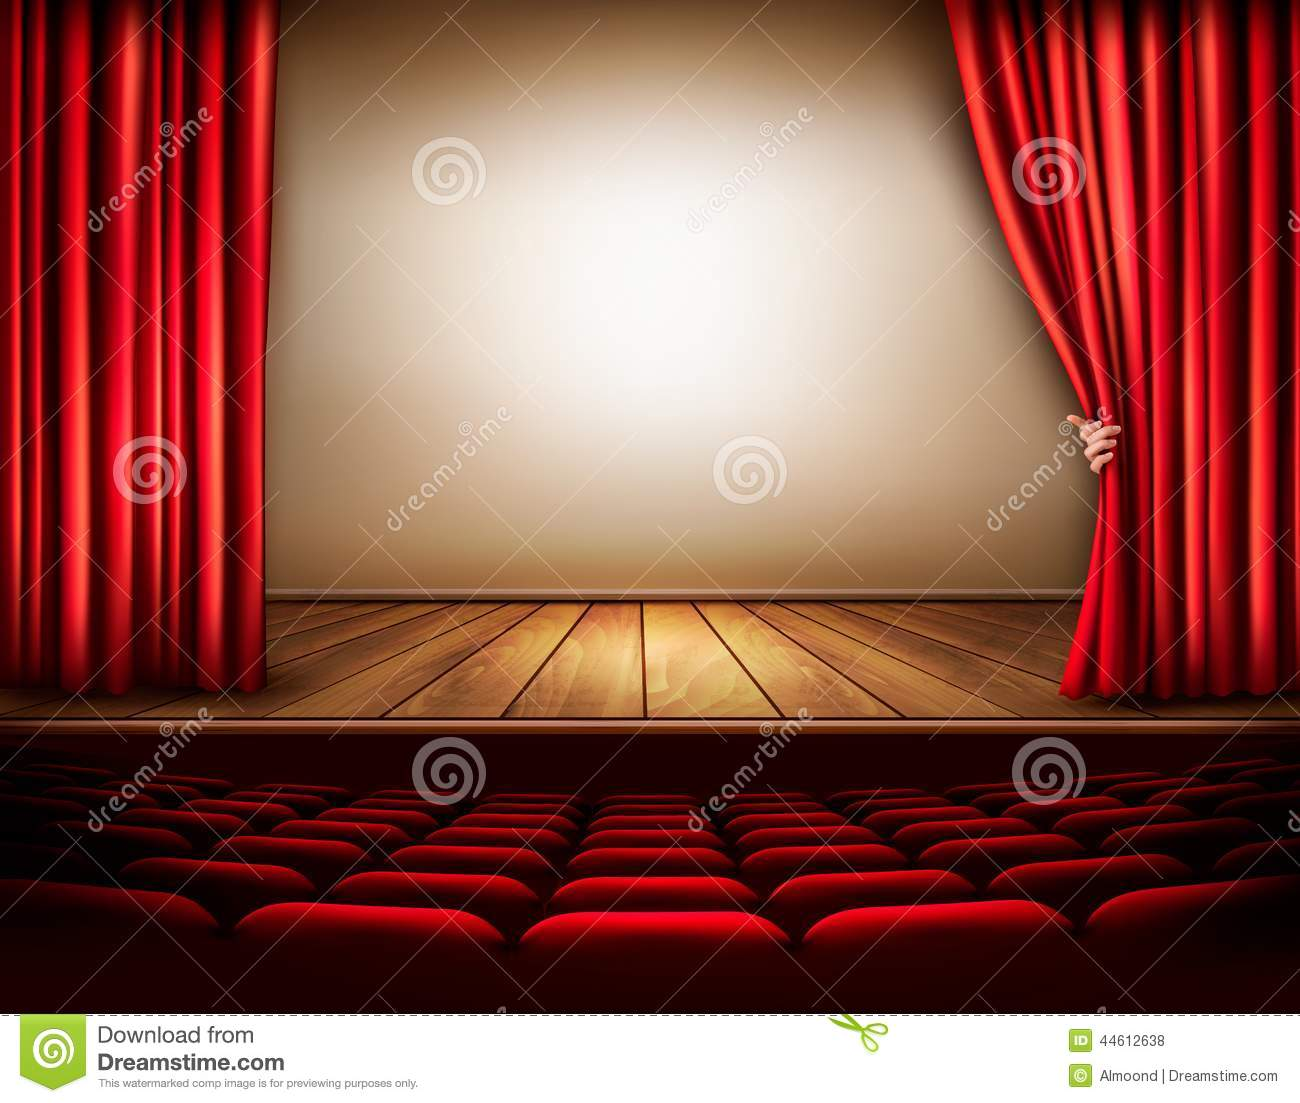 Velvet curtain club - Background With Red Velvet Curtain And Hand Royalty Free Stock Photos